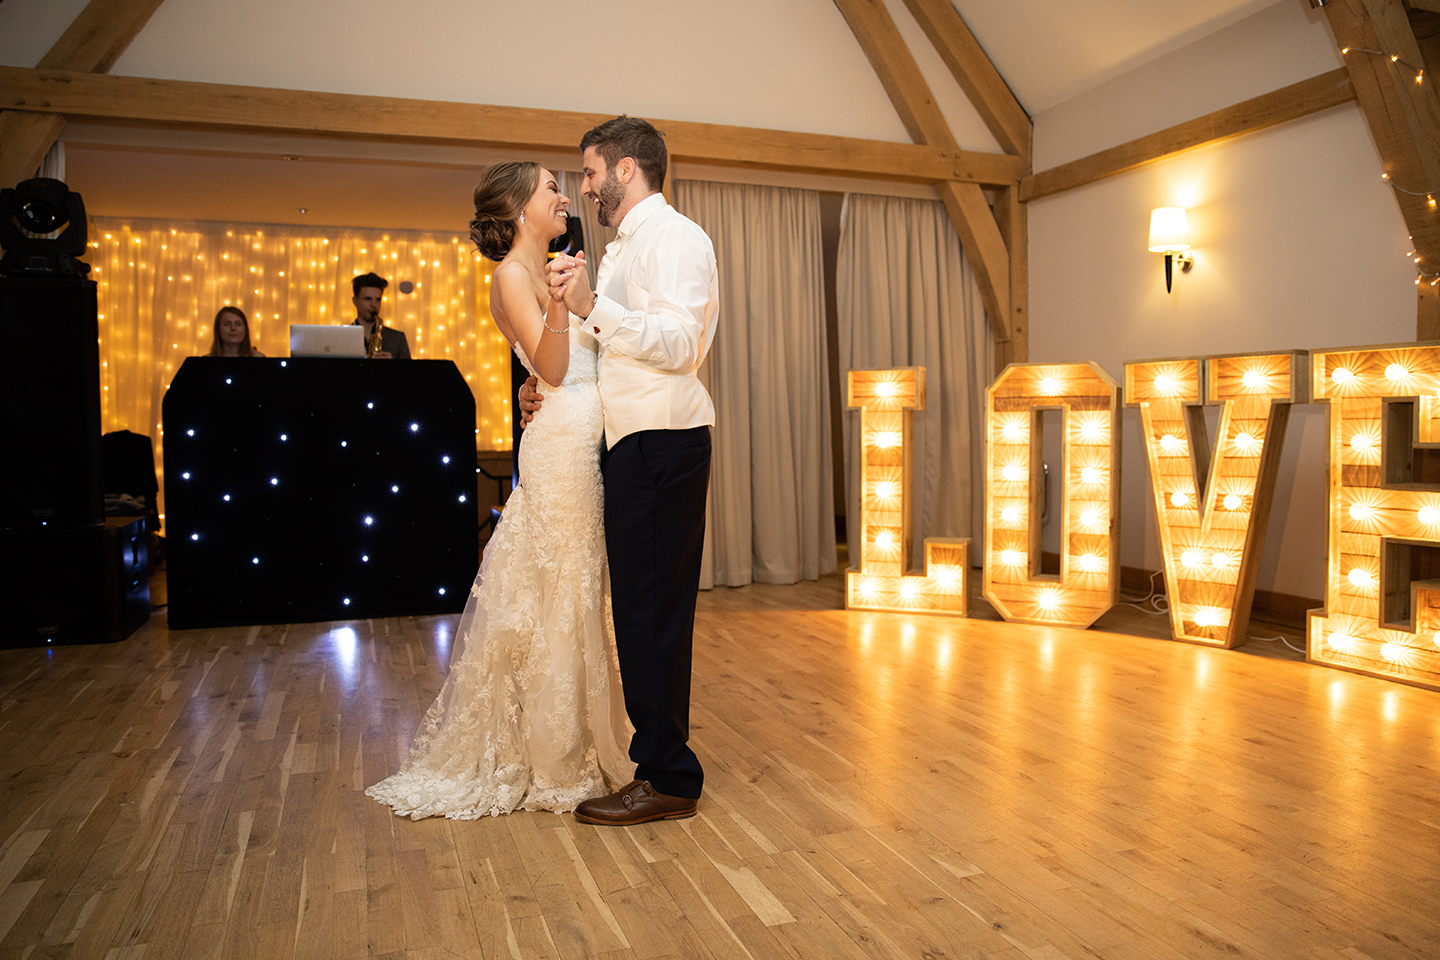 Newlyweds perform their first dance in the Bridge Barn at Bassmead Manor Barns during their evening wedding reception